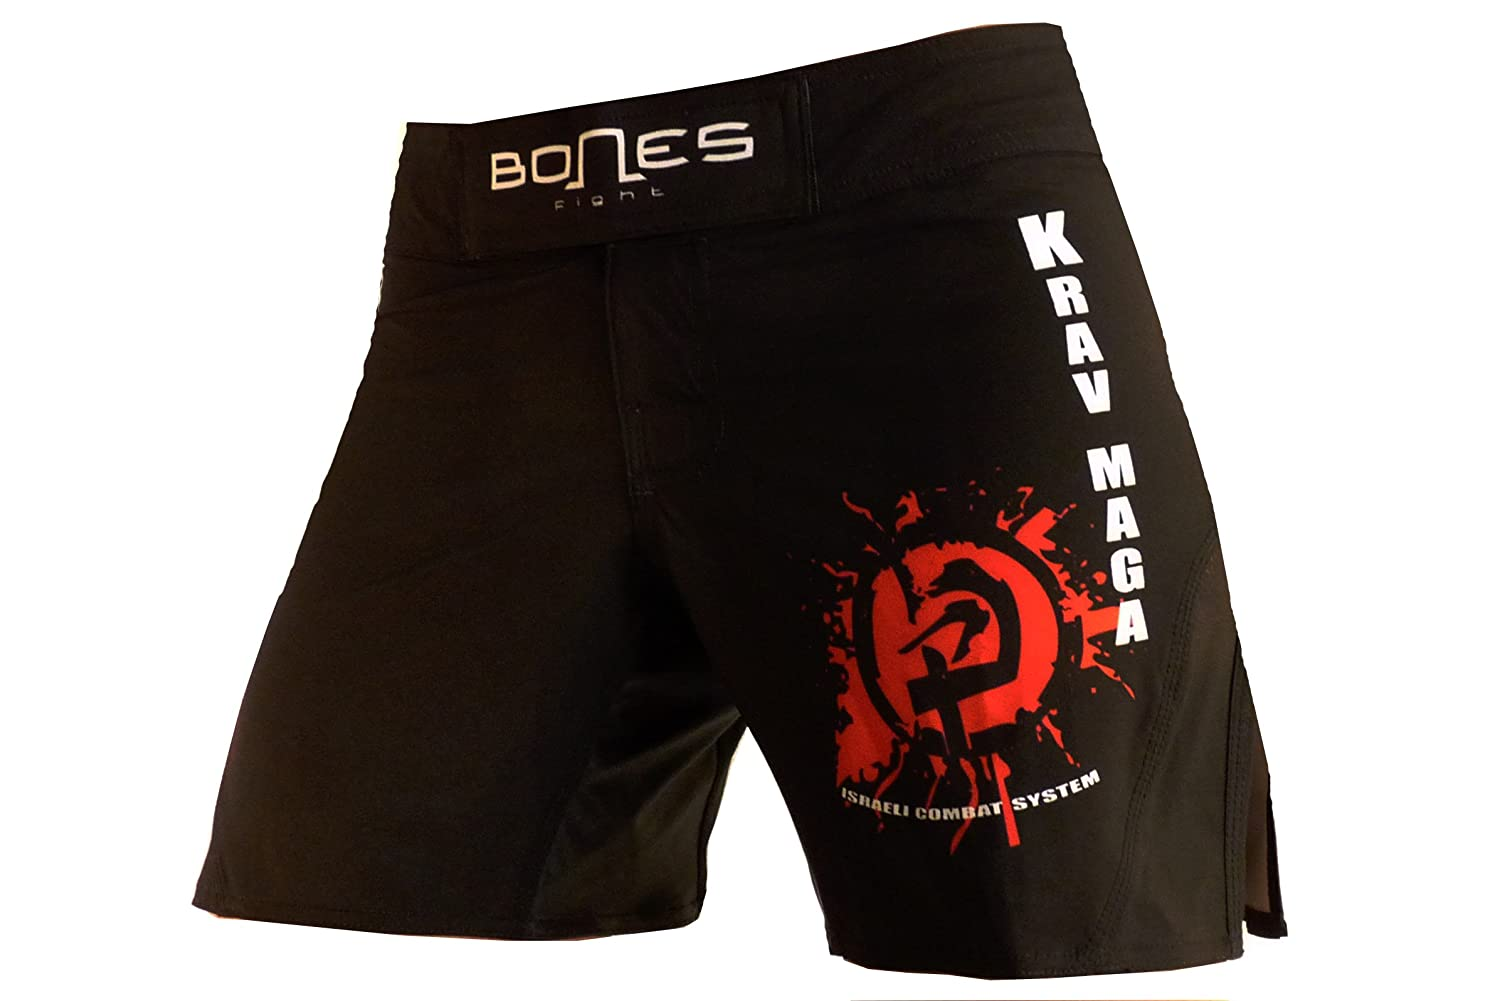 Bones Fight Krav Maga Women´s Fight short, women´s MMA short, Krav Maga BJJ, Women´s grappling short, women´s free fight short women´s MMA short